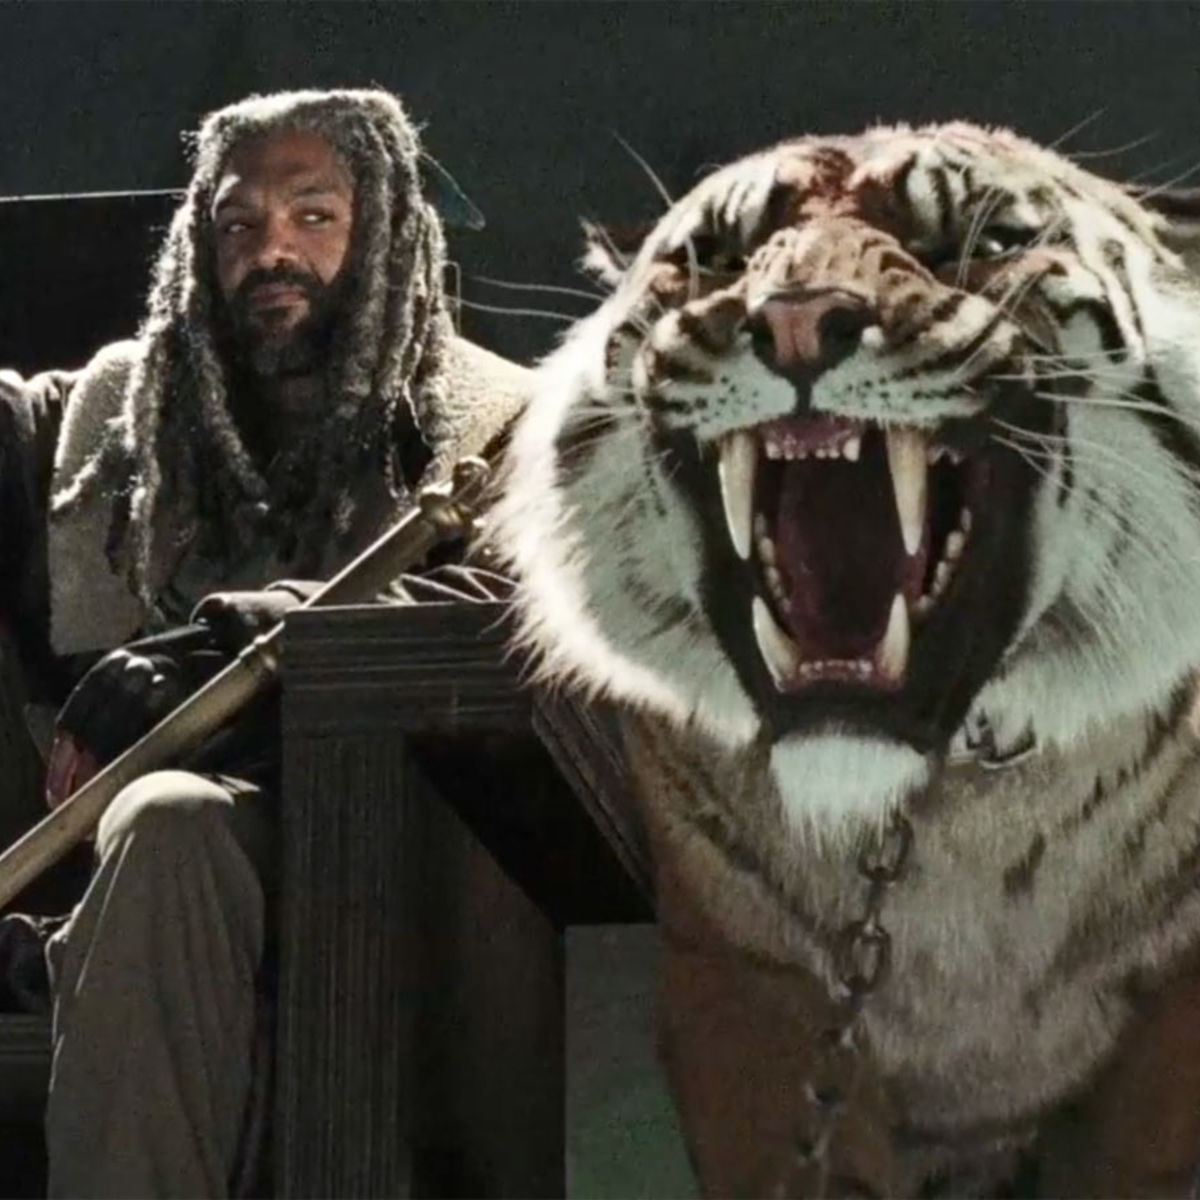 Ezekiel-Shiva-Walking-Dead-Season-7.jpg